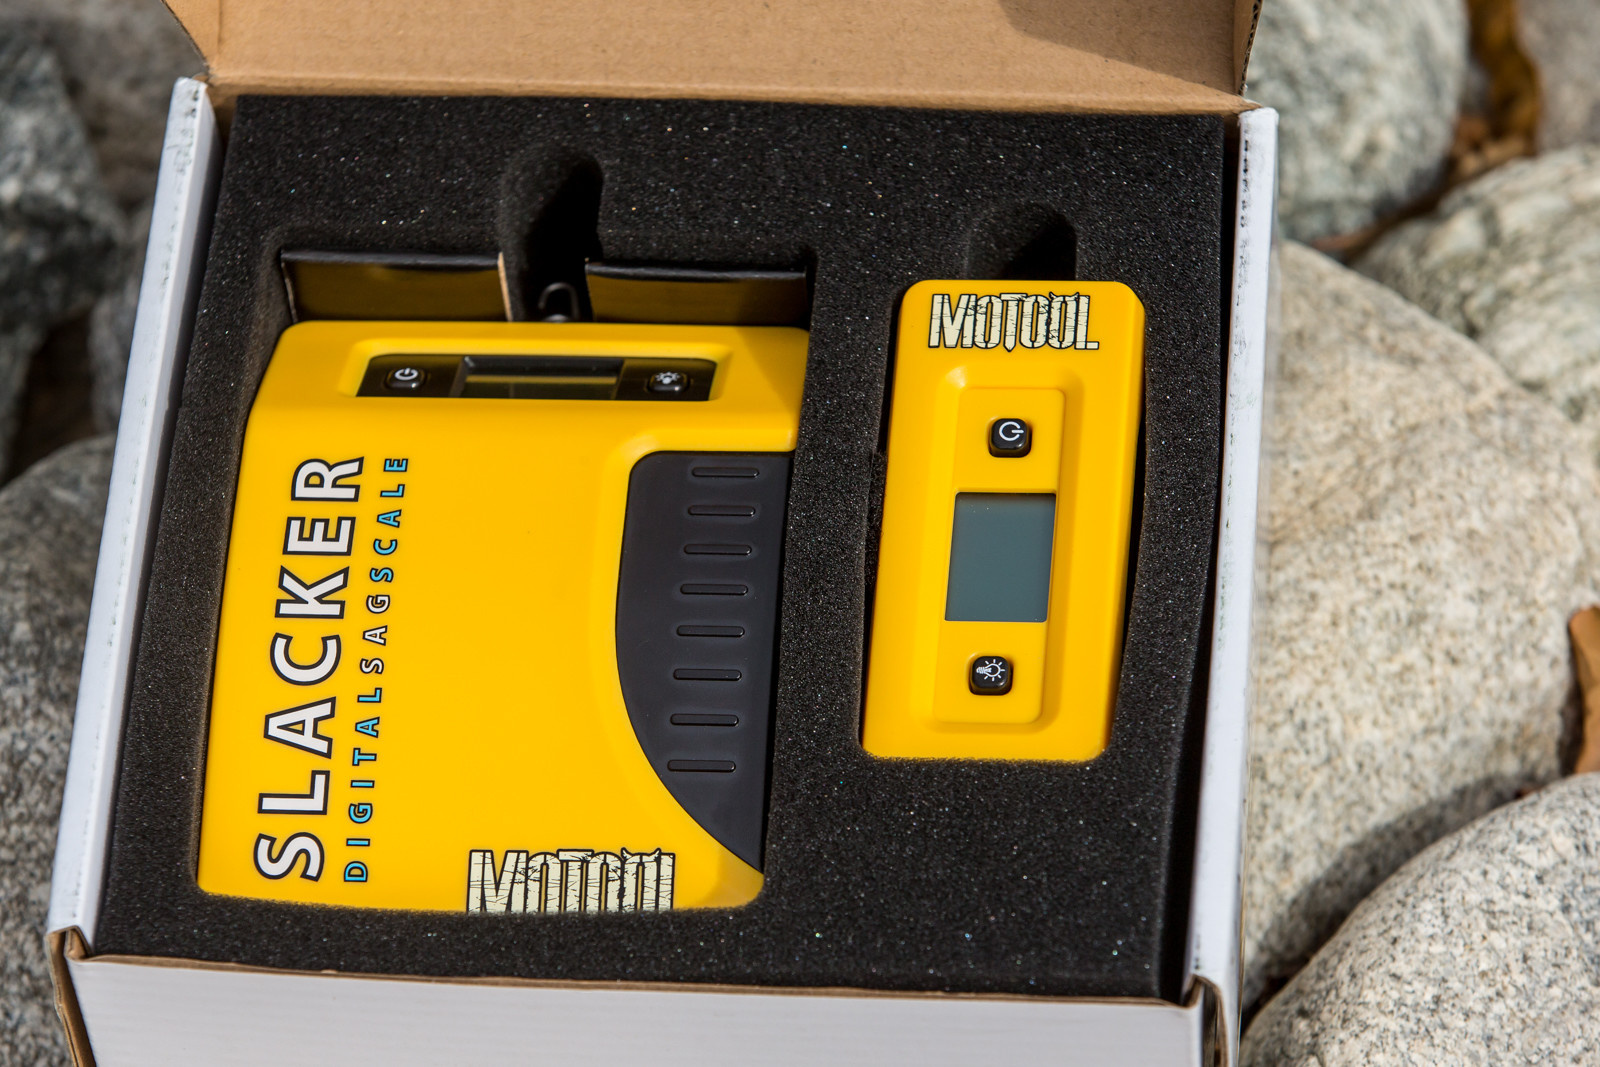 The updated look of the V2 Motool Slacker.